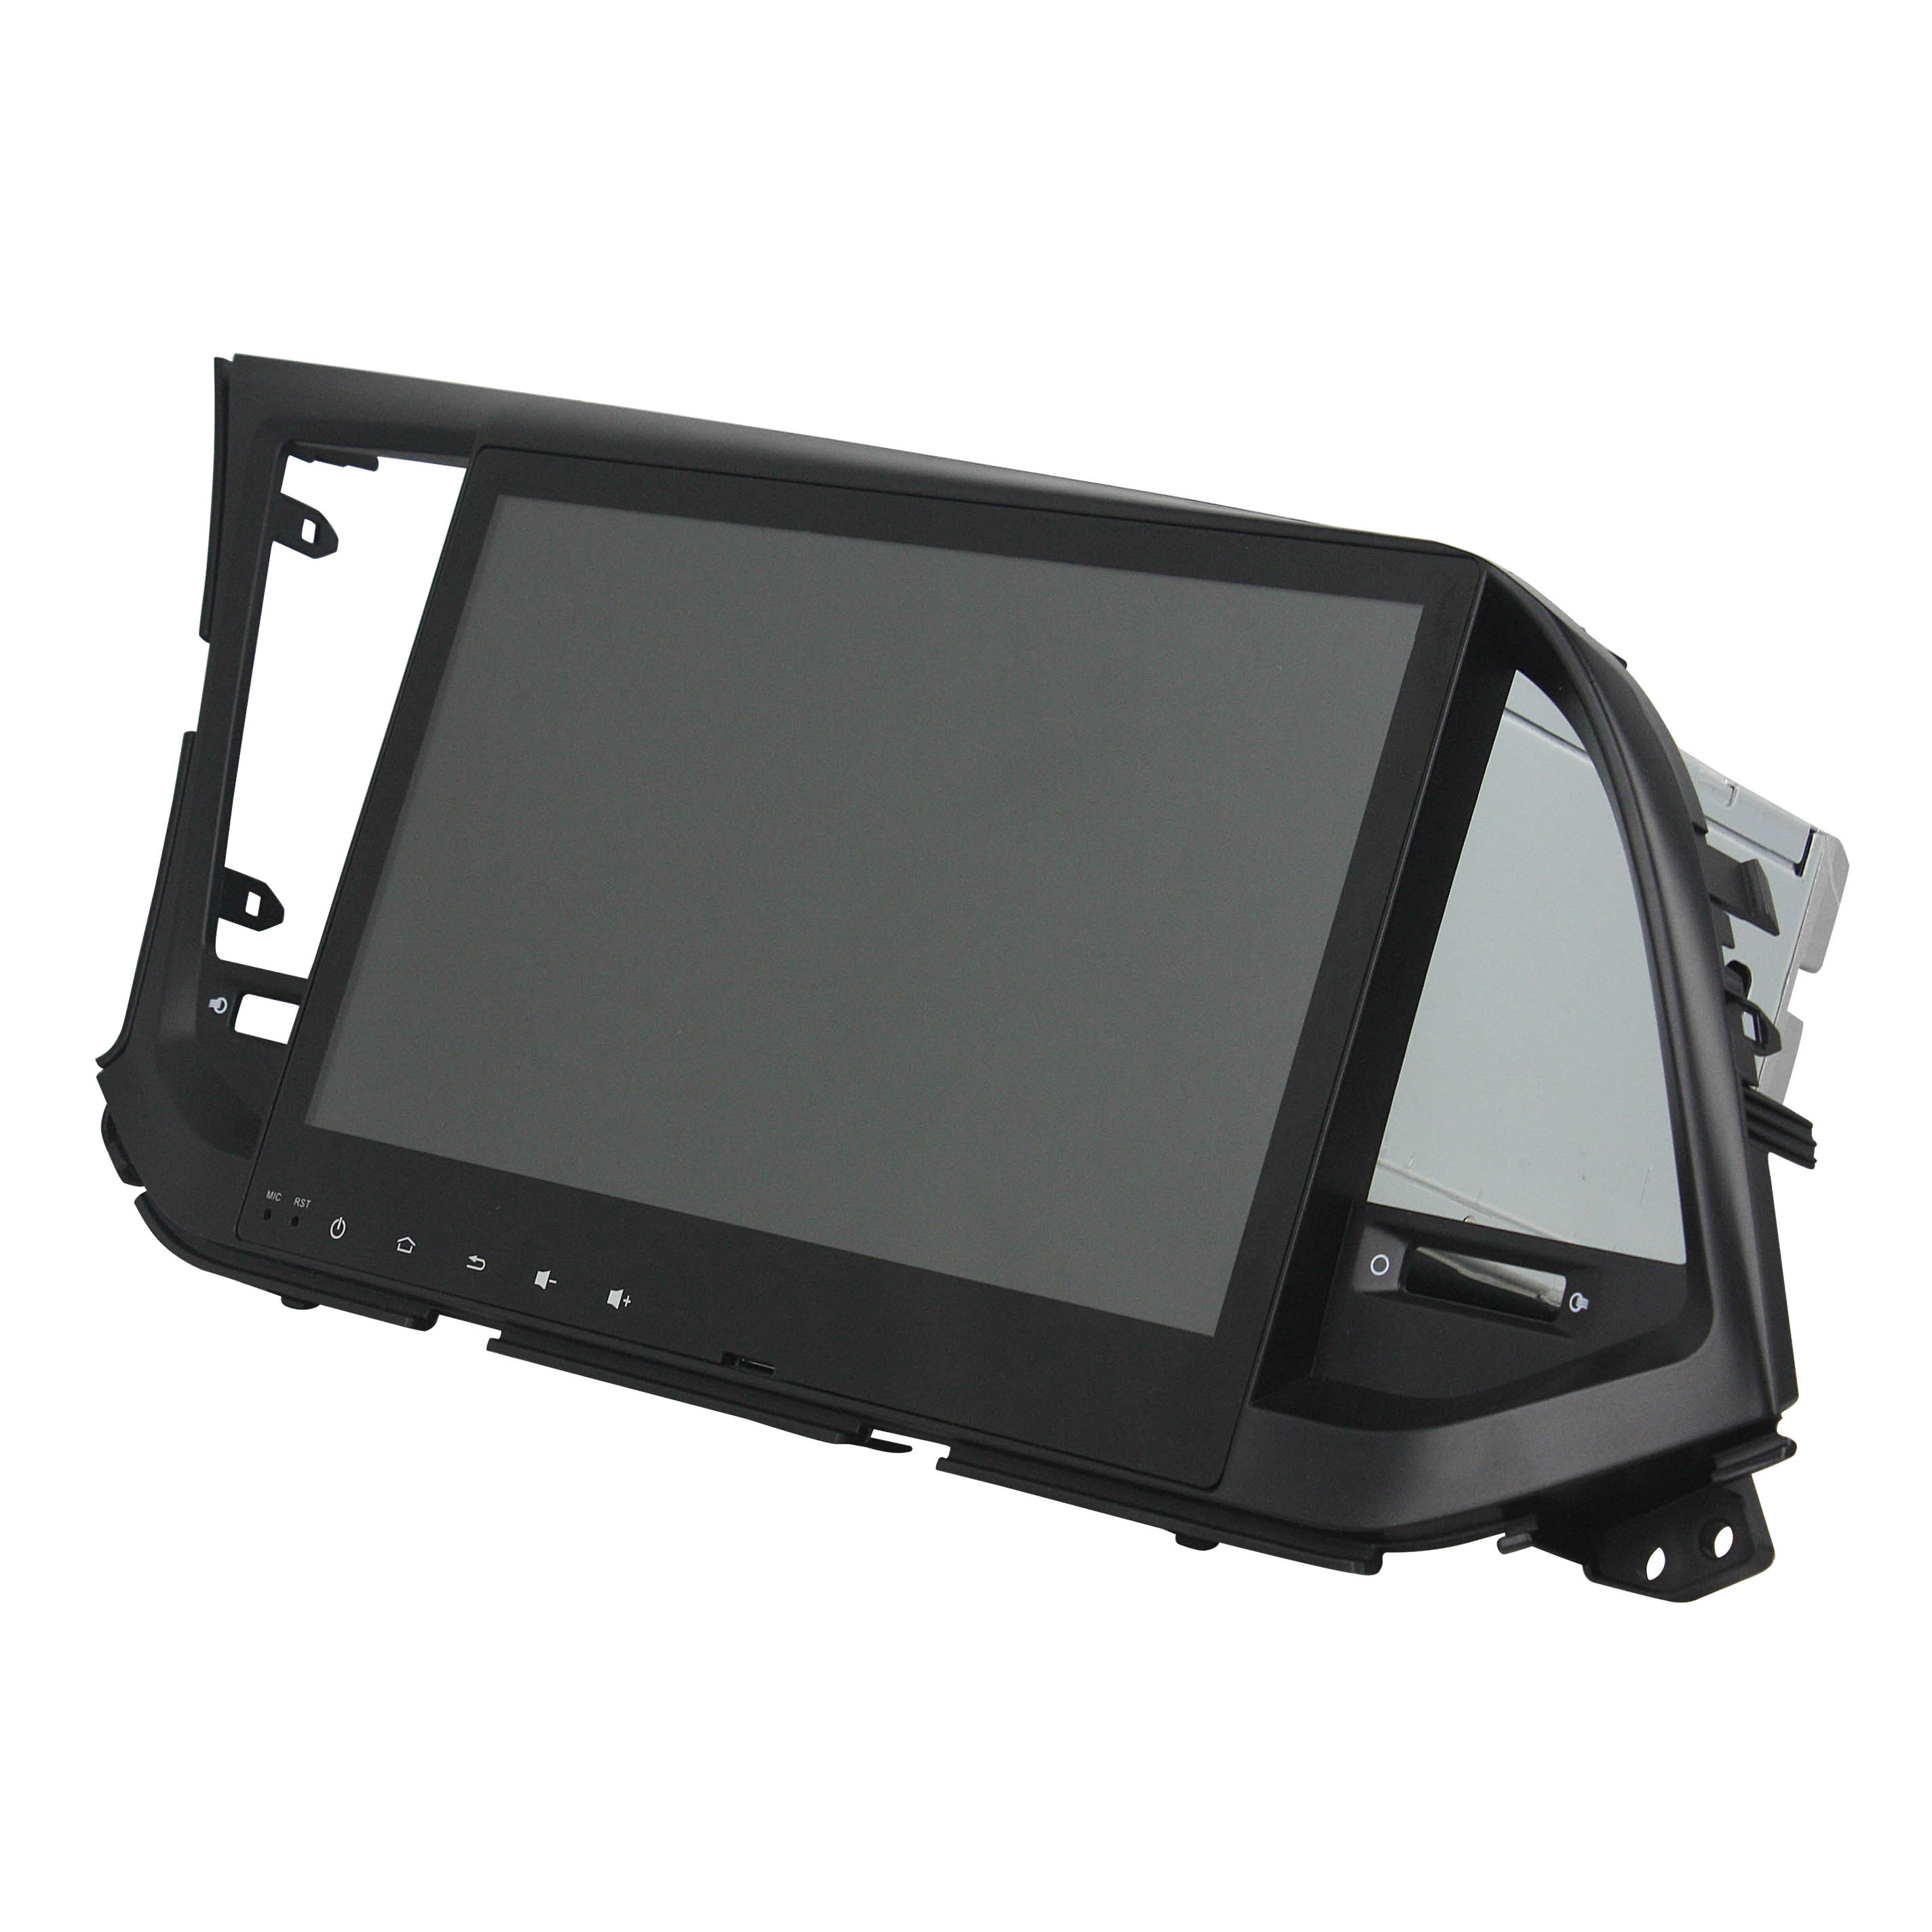 Deckless car DVD player for Elantra 2016